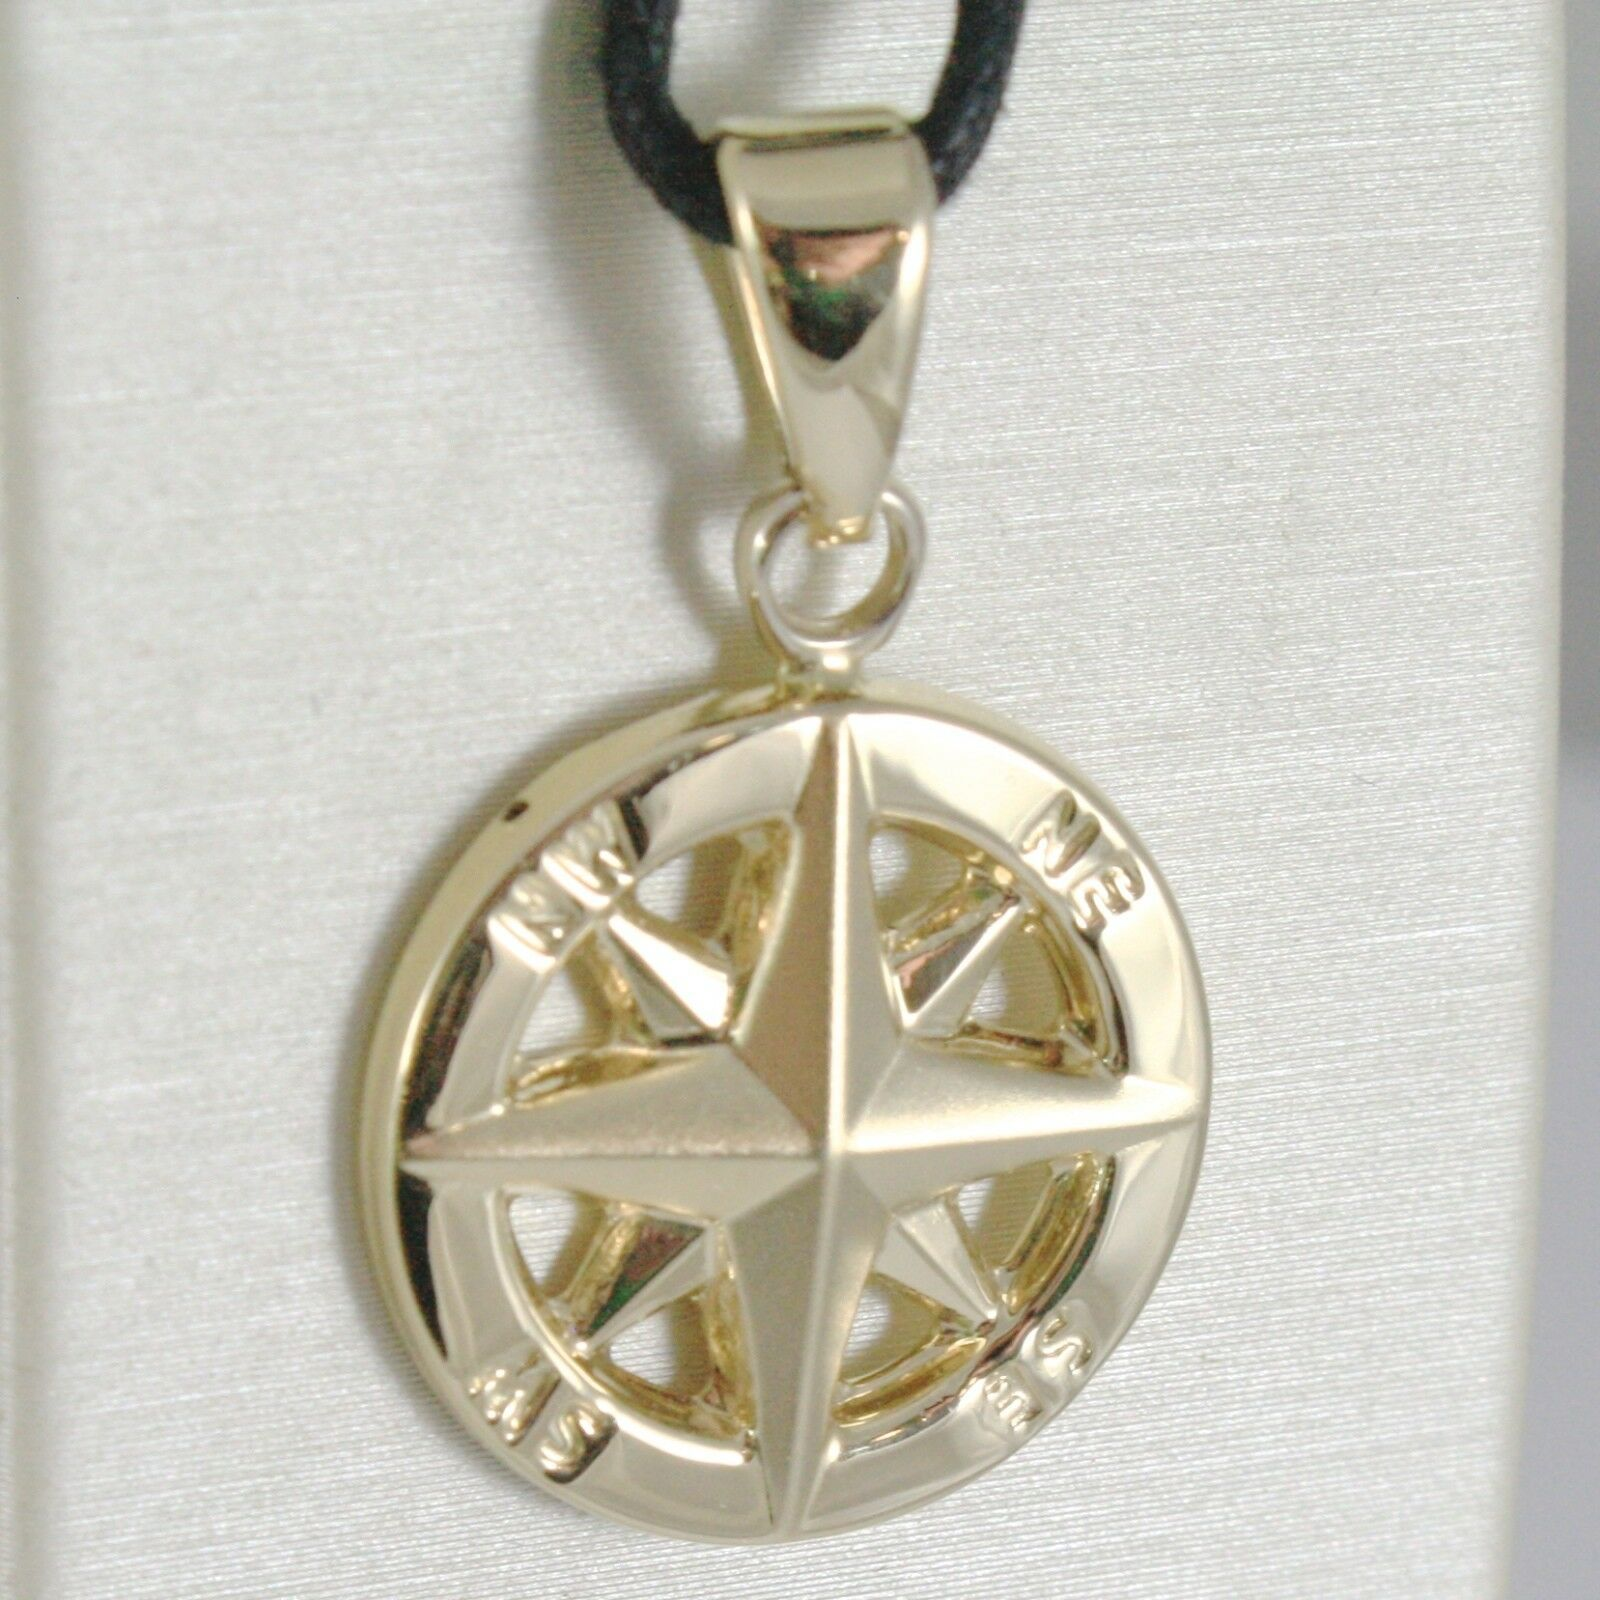 18K YELLOW GOLD WIND ROSE COMPASS CHARM PENDANT, MADE IN ITALY, DIAMETER 19 MM